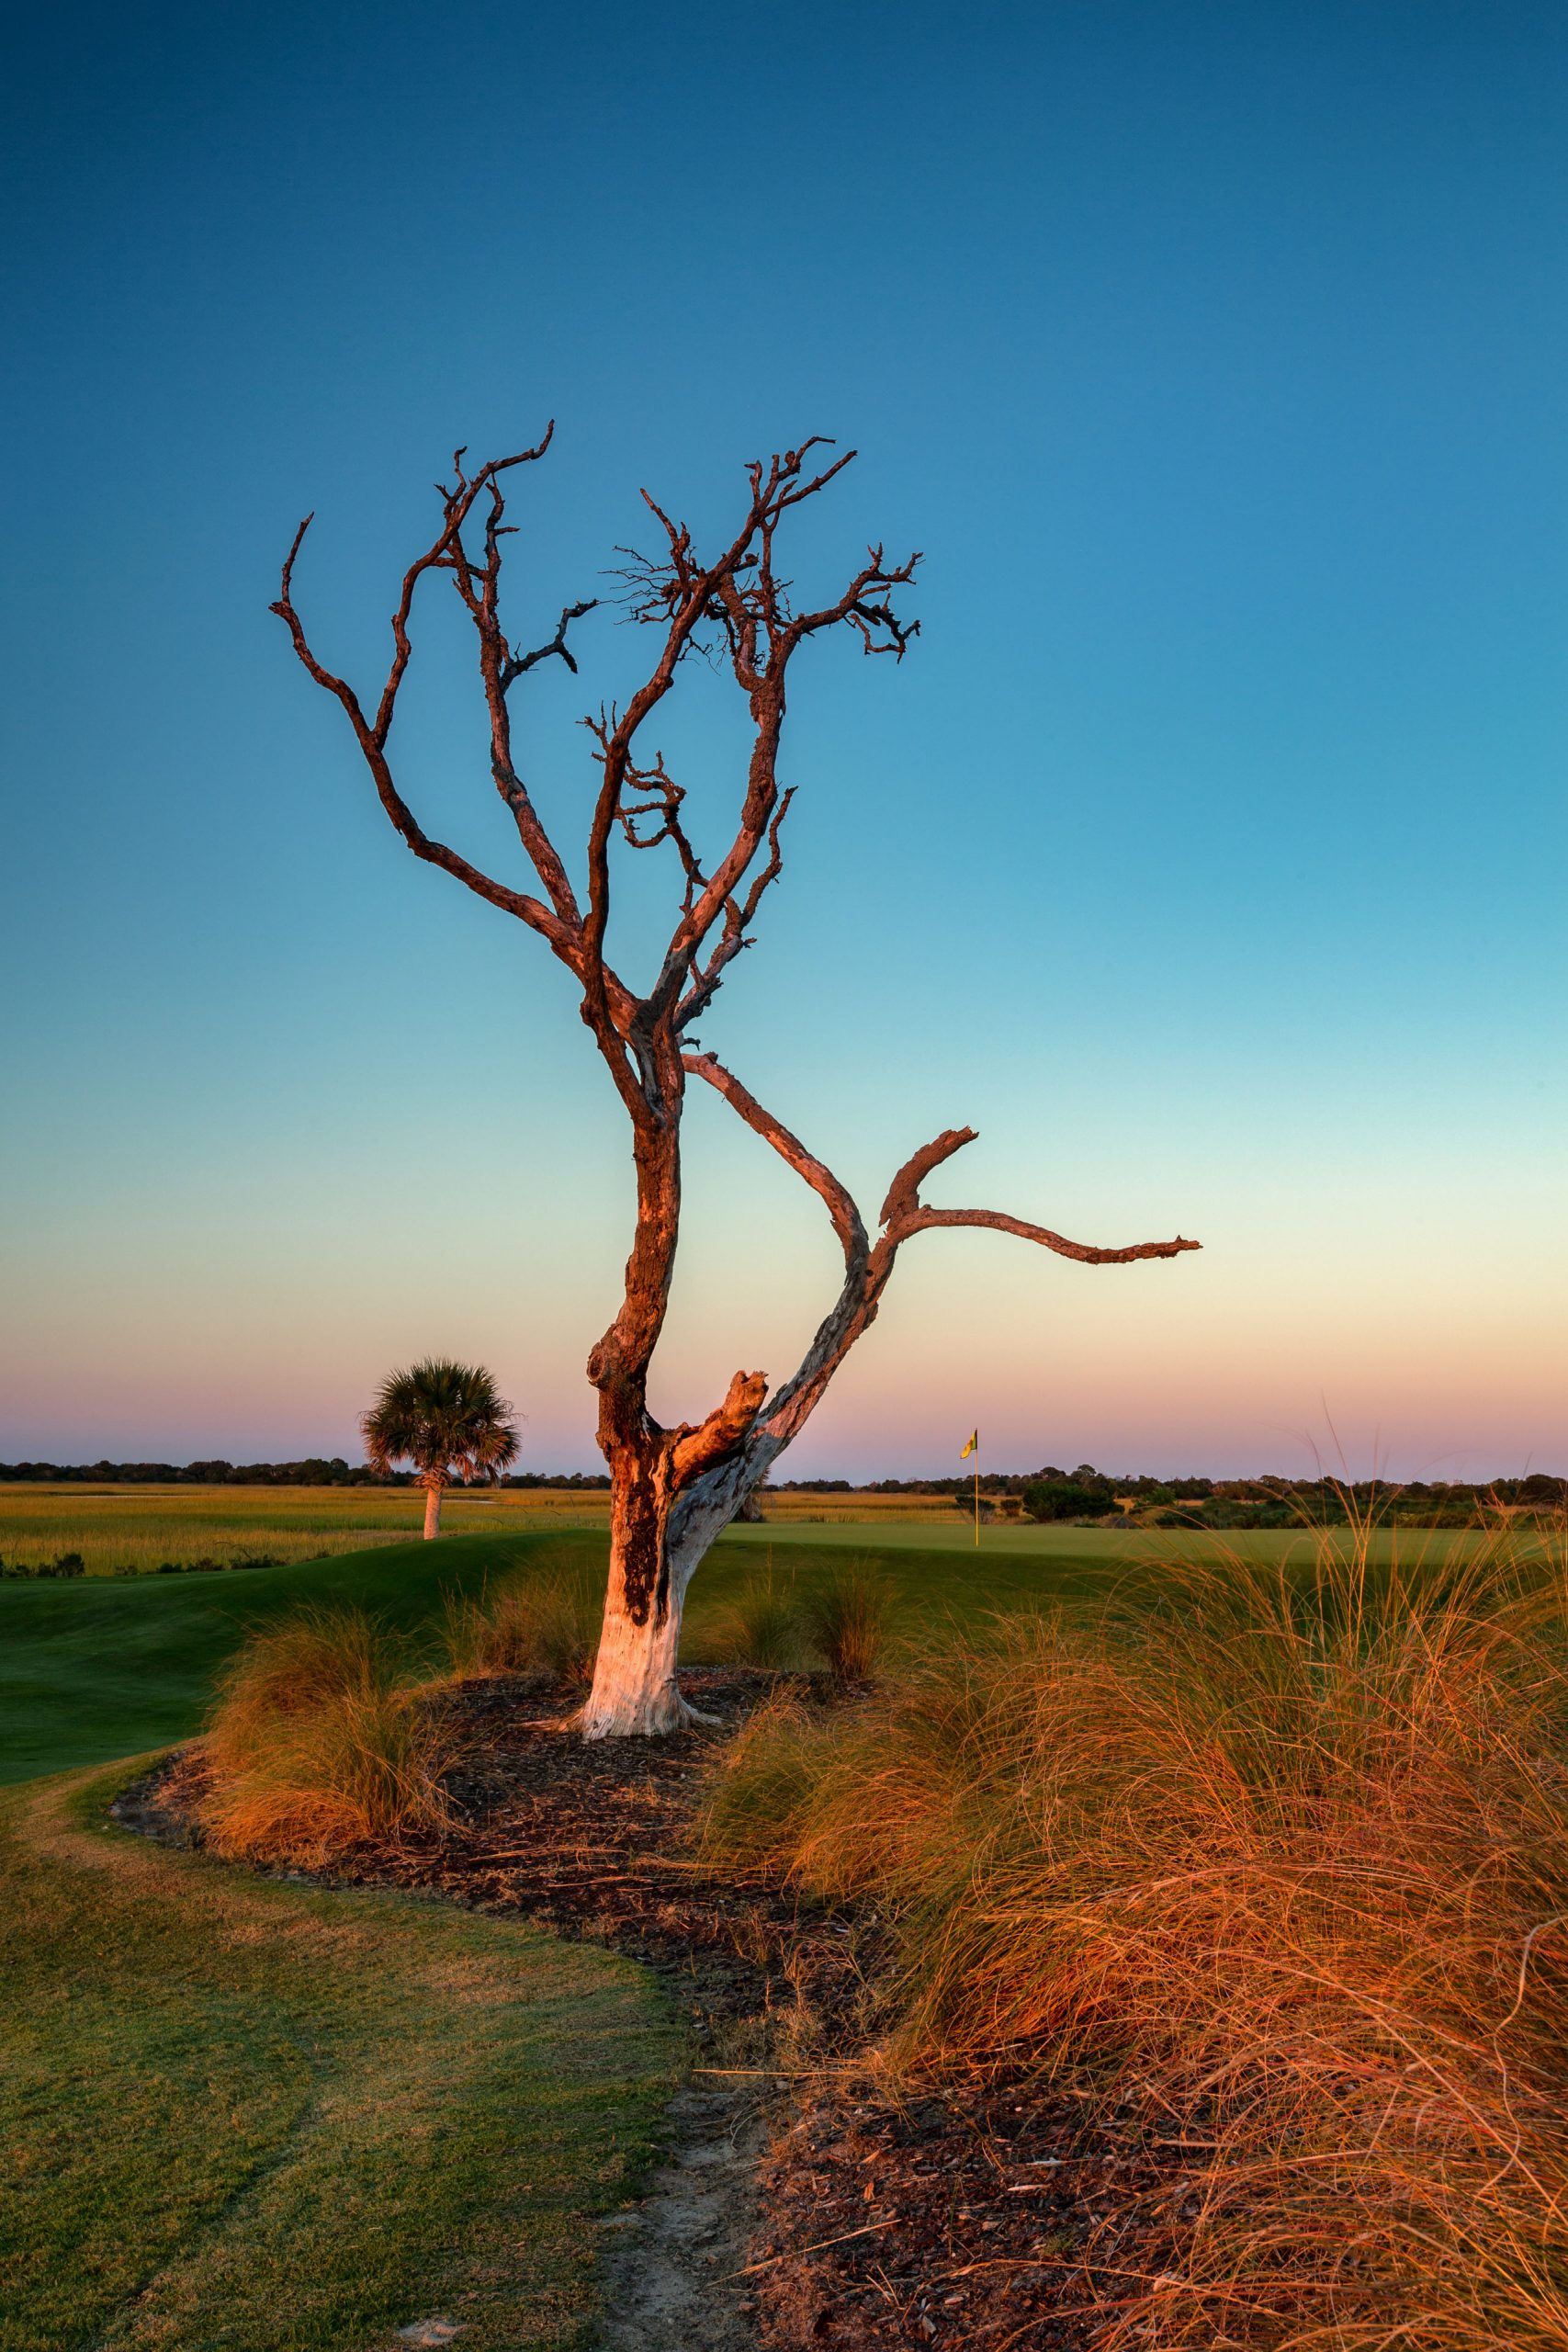 Nature always has an unpredictable effect on major championships, but in 2012 what was already in the ground, not in the forecast, got people talking. The lone live oak tree was a small part of the hole, but Rory McIlroy's aggressive drive managed to crash-land in its branches. Photo: Jim Reitz